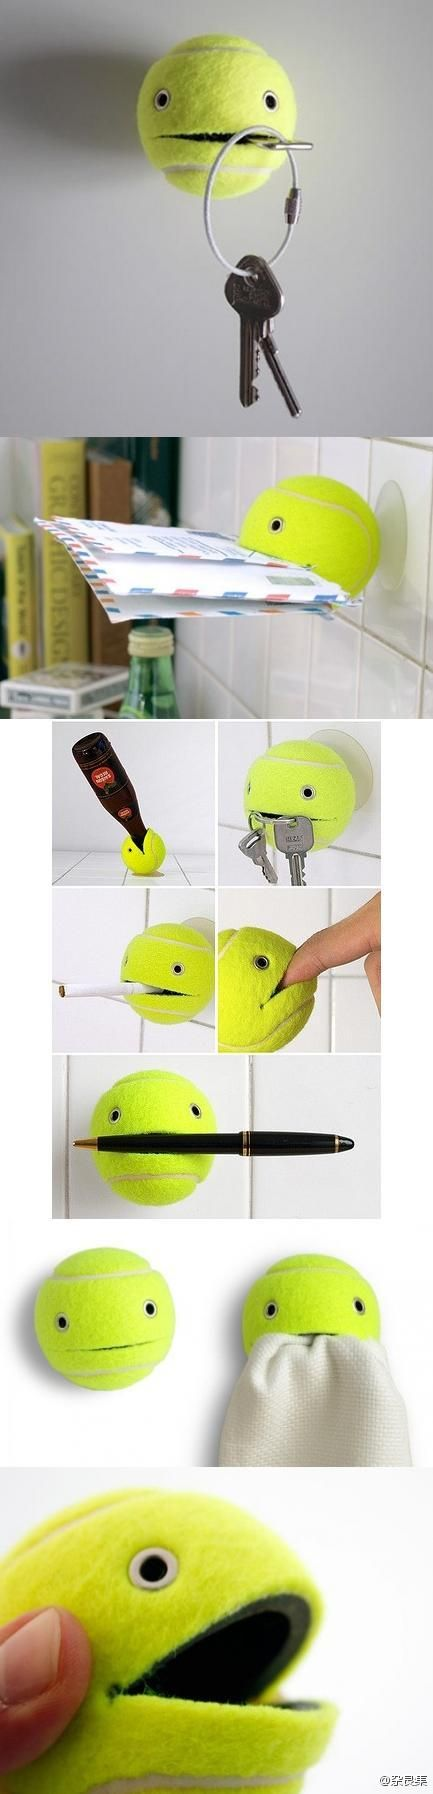 Cute and useful... Oh so making some of these guys!!!